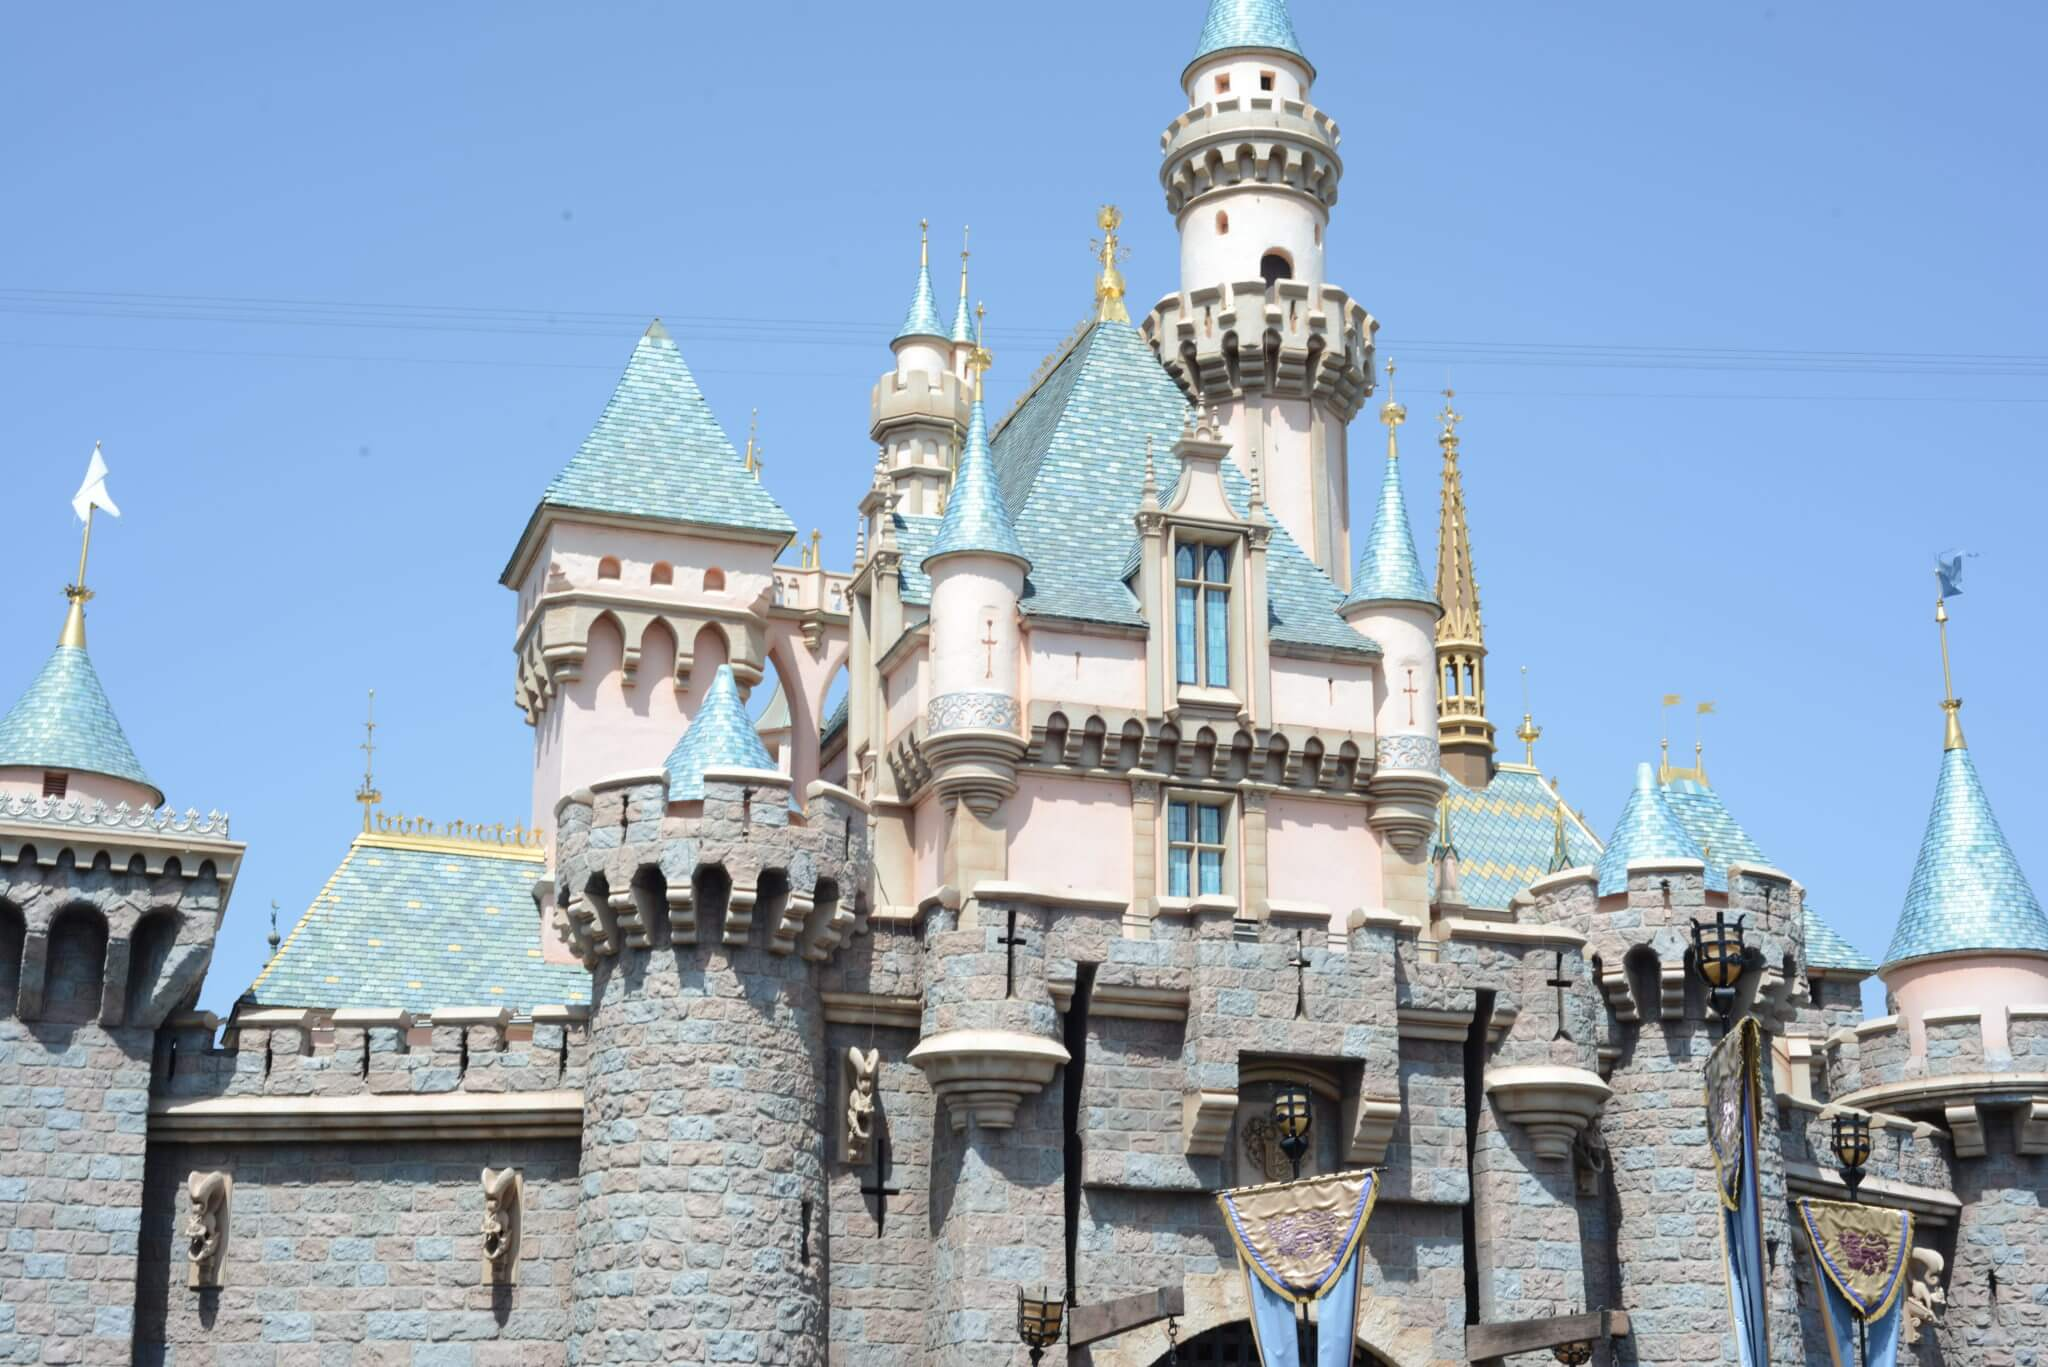 Sleeping Beauty Castle 2019 during the day